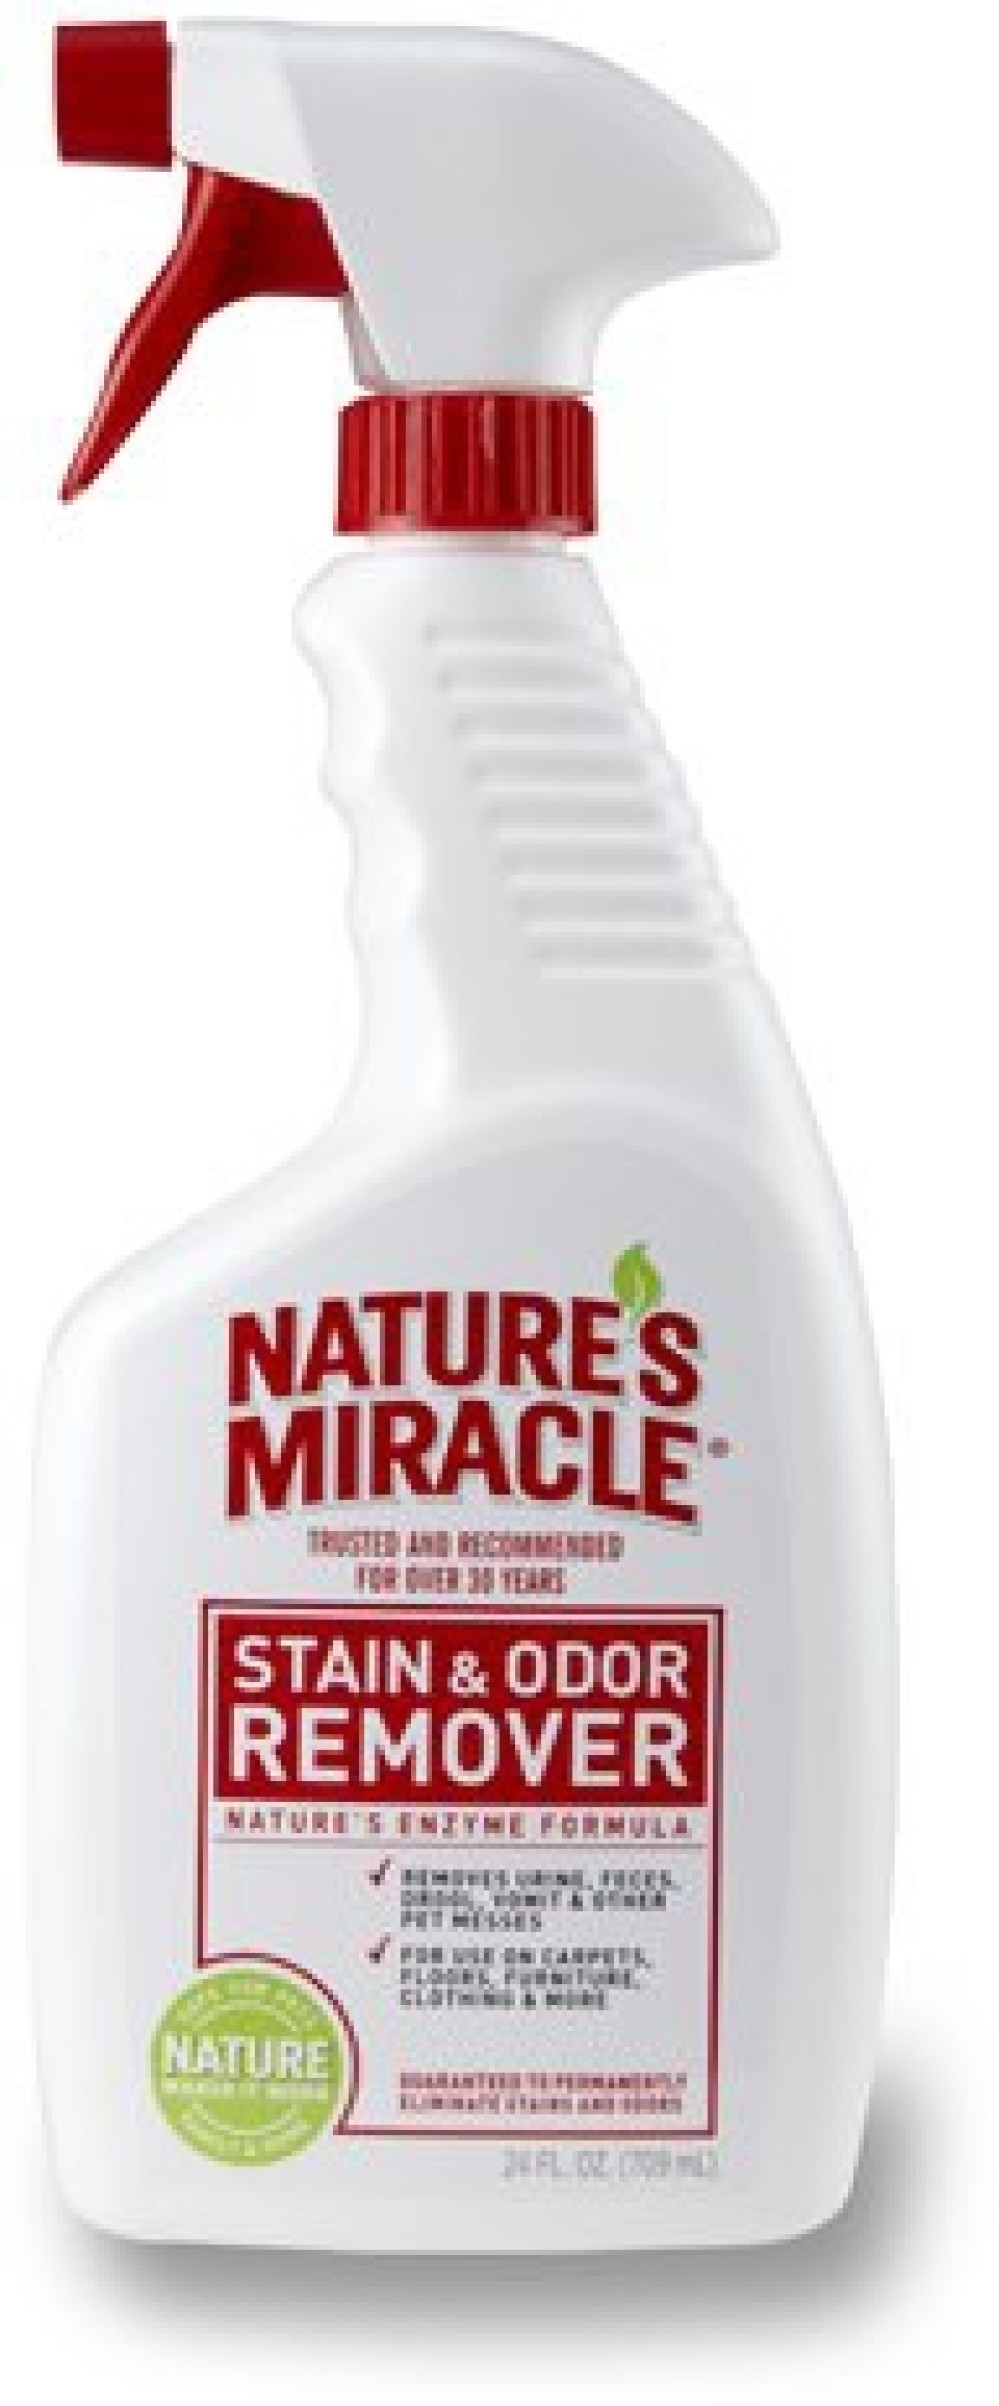 zoo/Natures_Miracle_Stain_amp-_Odor_Remover_Spray